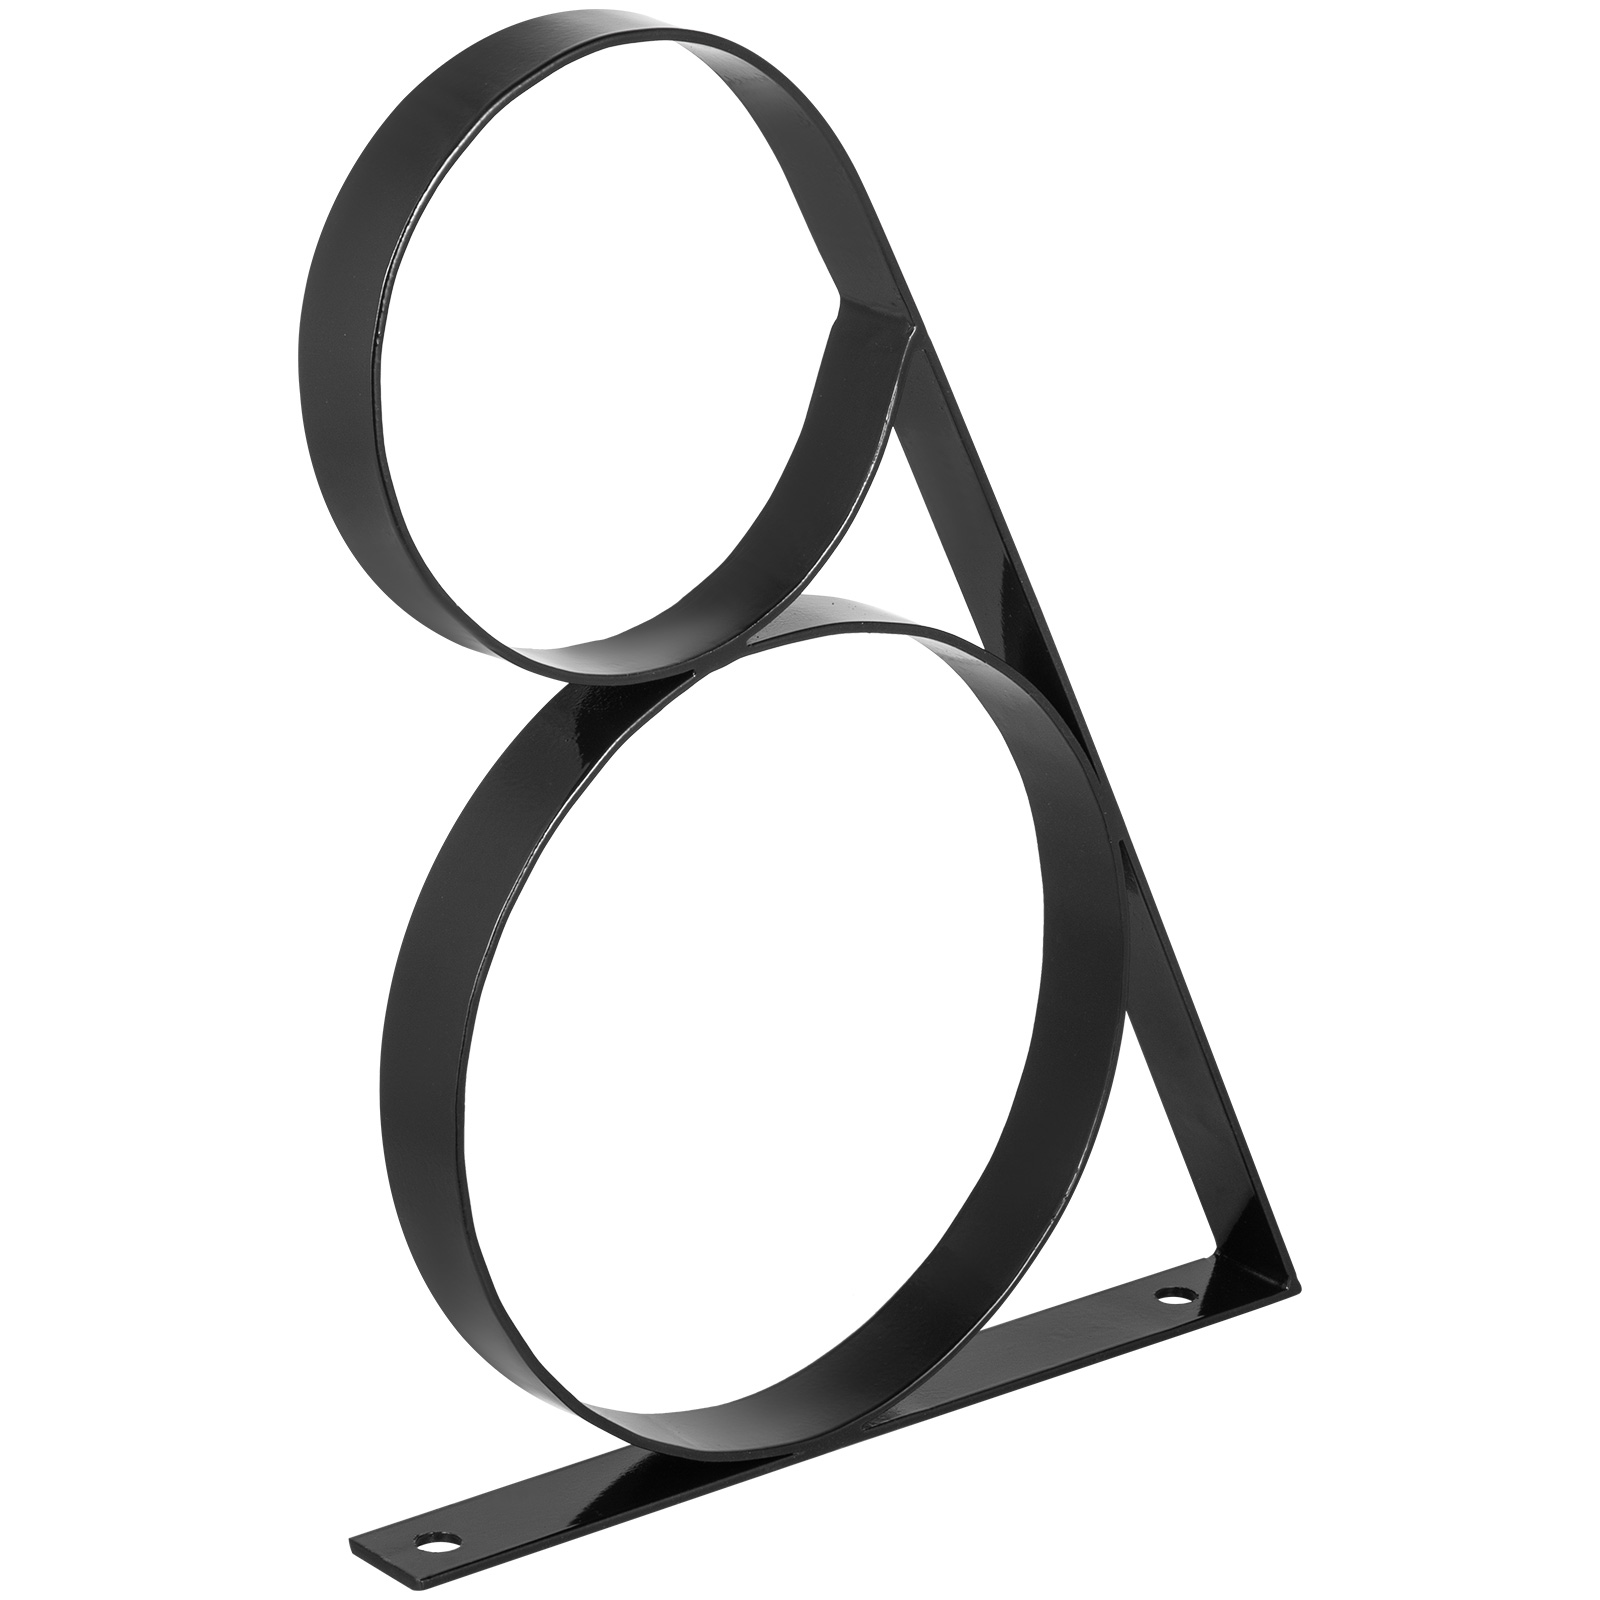 Handrails-for-Outdoor-Step-Wrought-Iron-Handrail-20-034-Length-Porch-Deck-Railing thumbnail 34